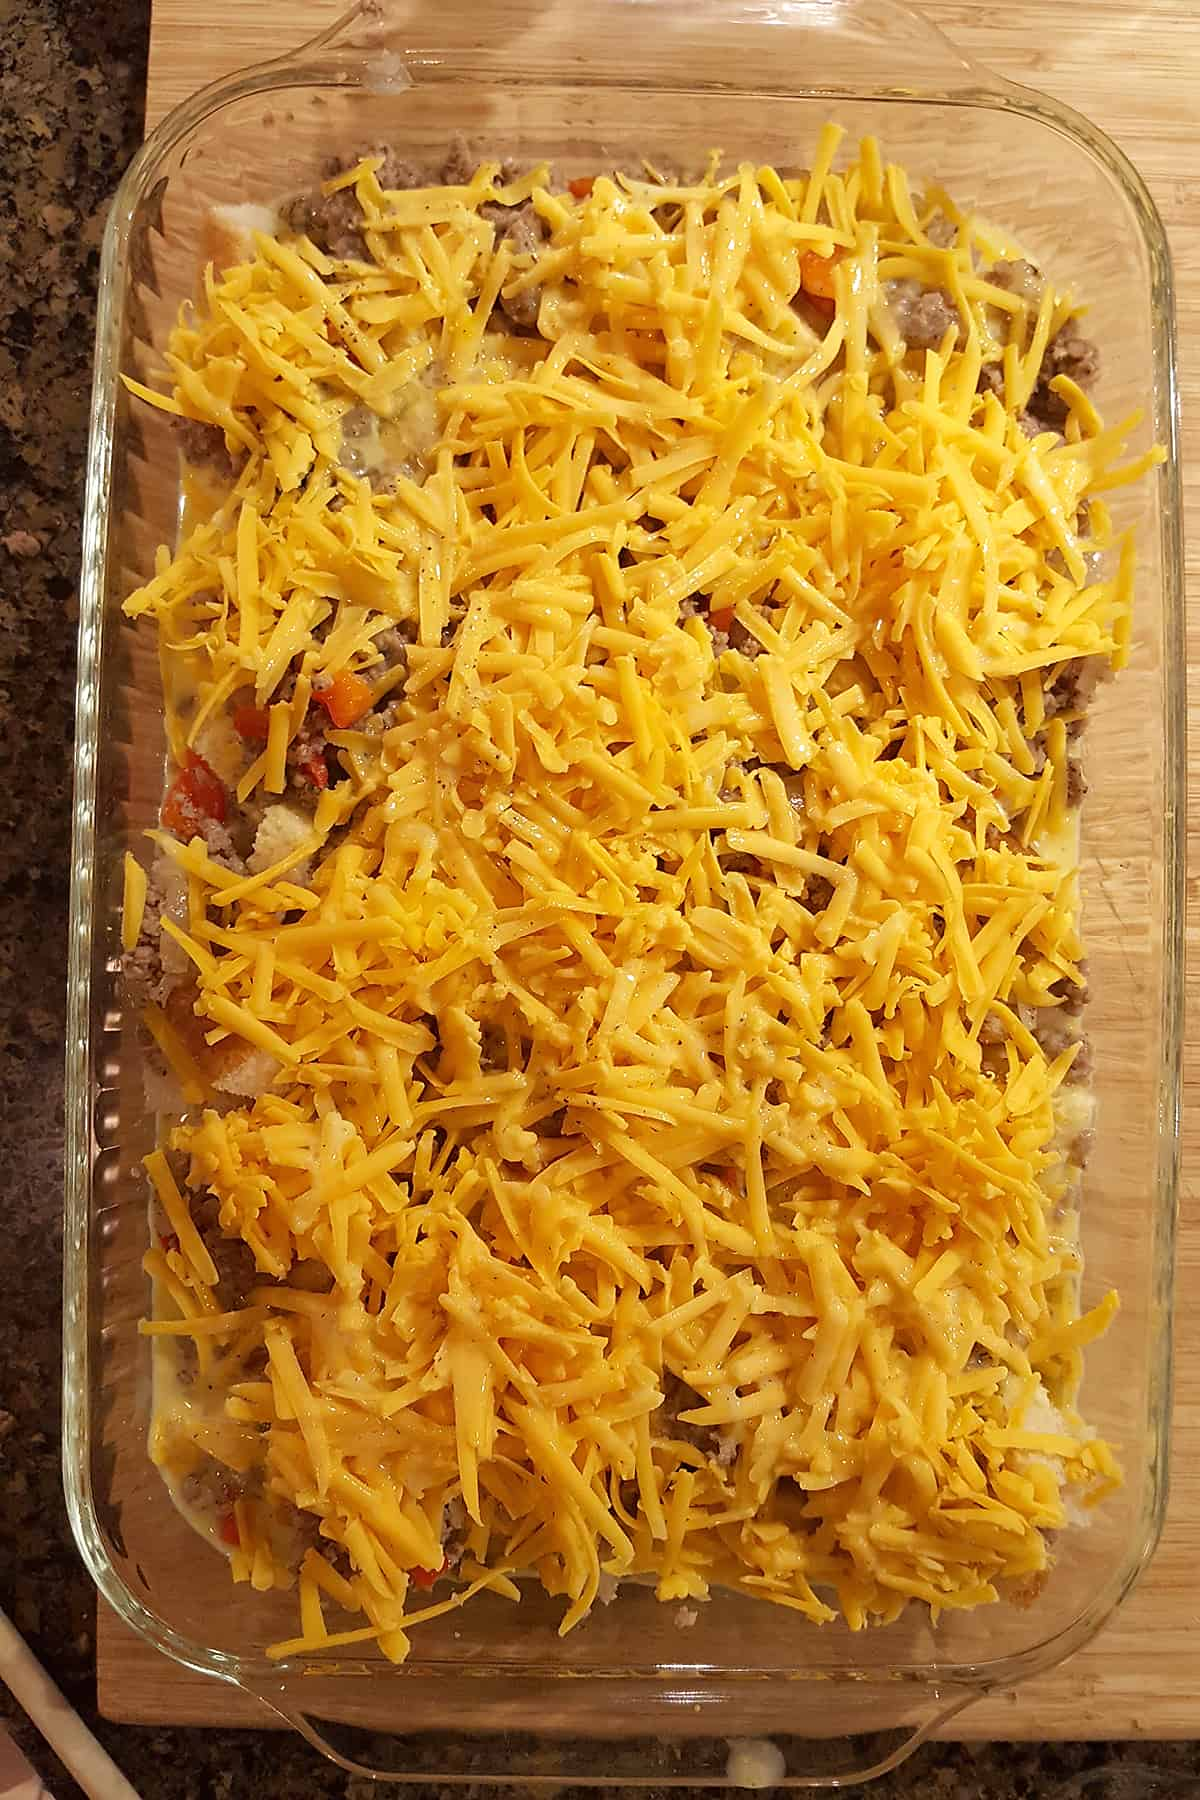 Finished casserole in a baking dish